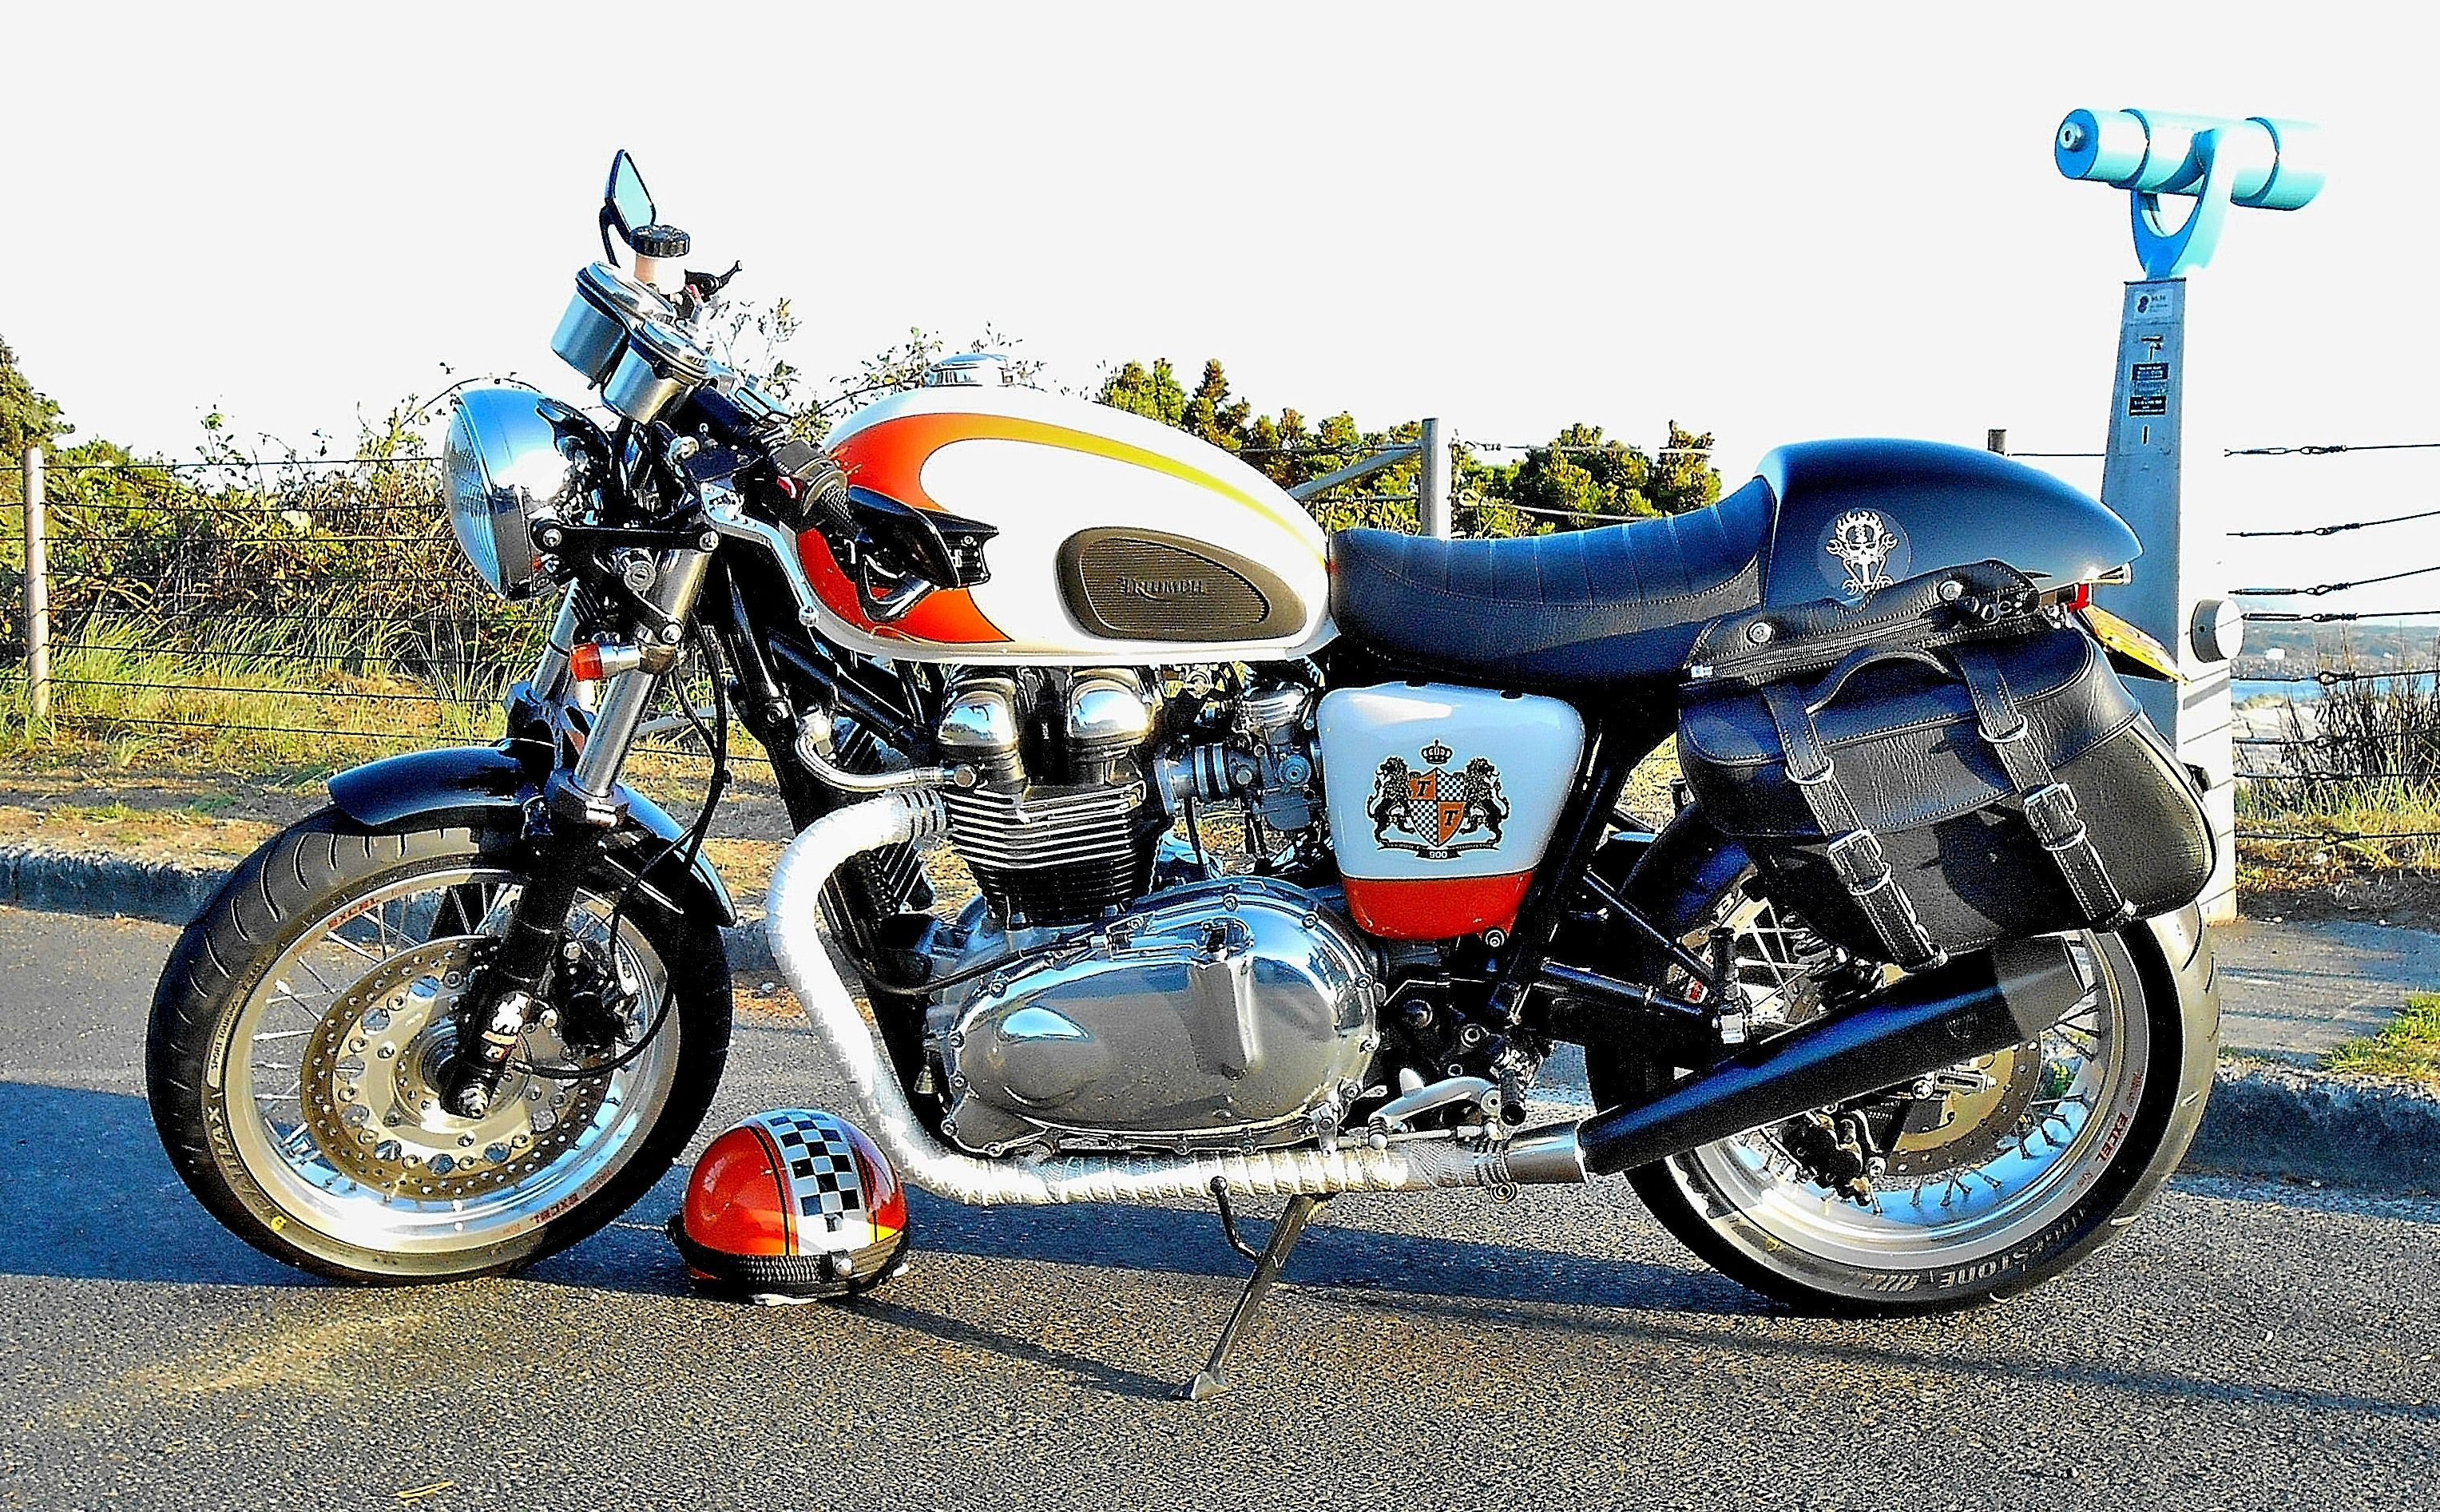 small resolution of thruxton with saddlebags added for light touring